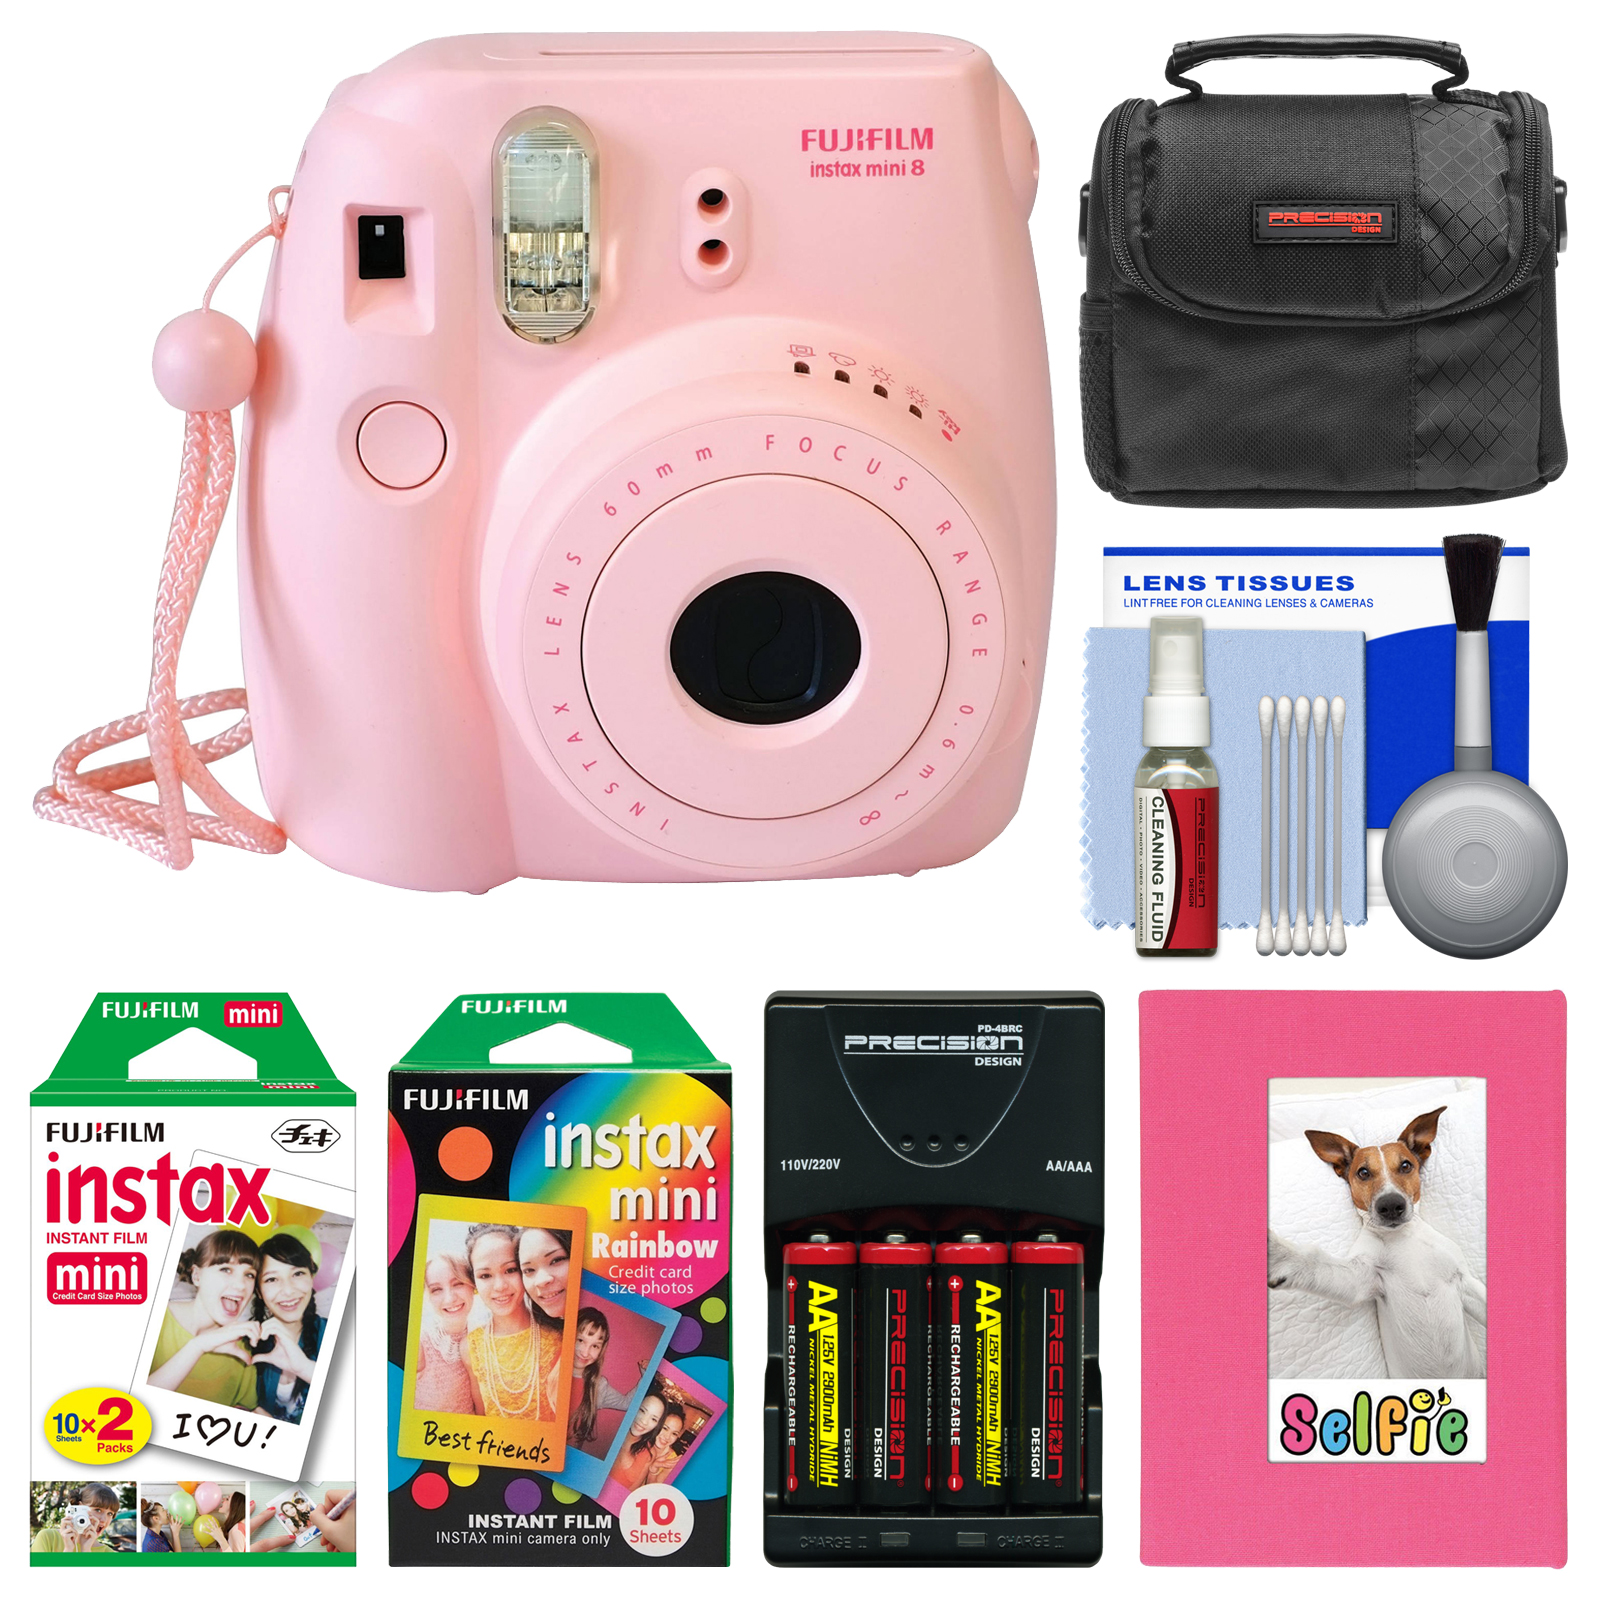 Fujifilm Instax Mini 8 Instant Film Camera (Pink) with Photo Album + Instant Film & Rainbow Film + Case + Batteries & Charger Kit